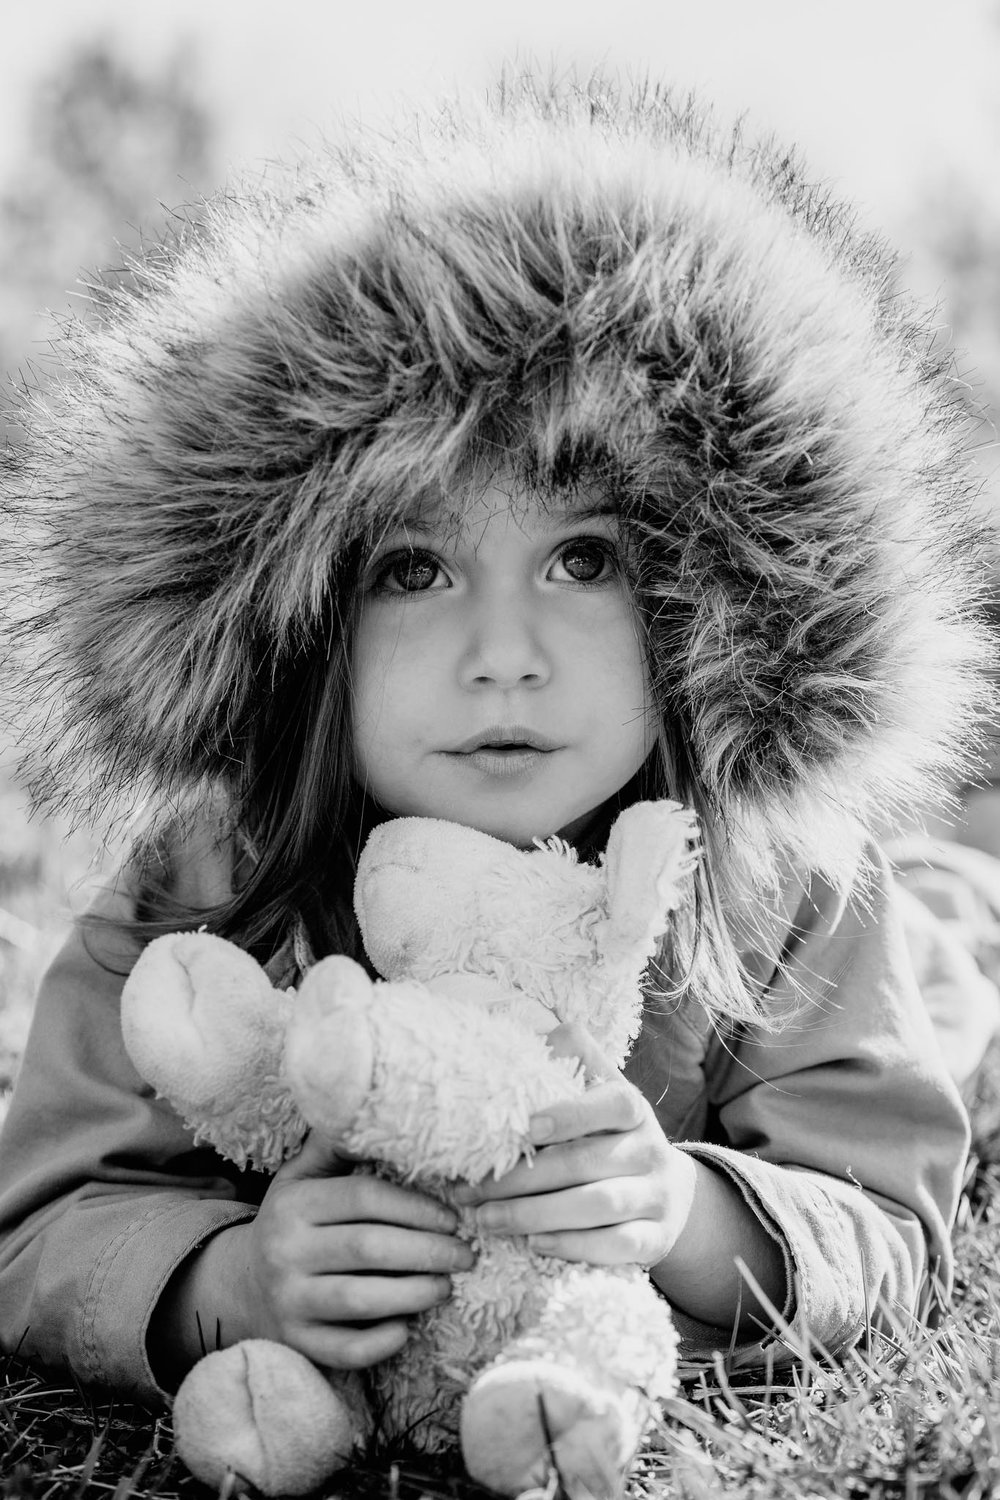 Black and white portrait of a toddler wearing a fur hood holding a stuffed lamb.